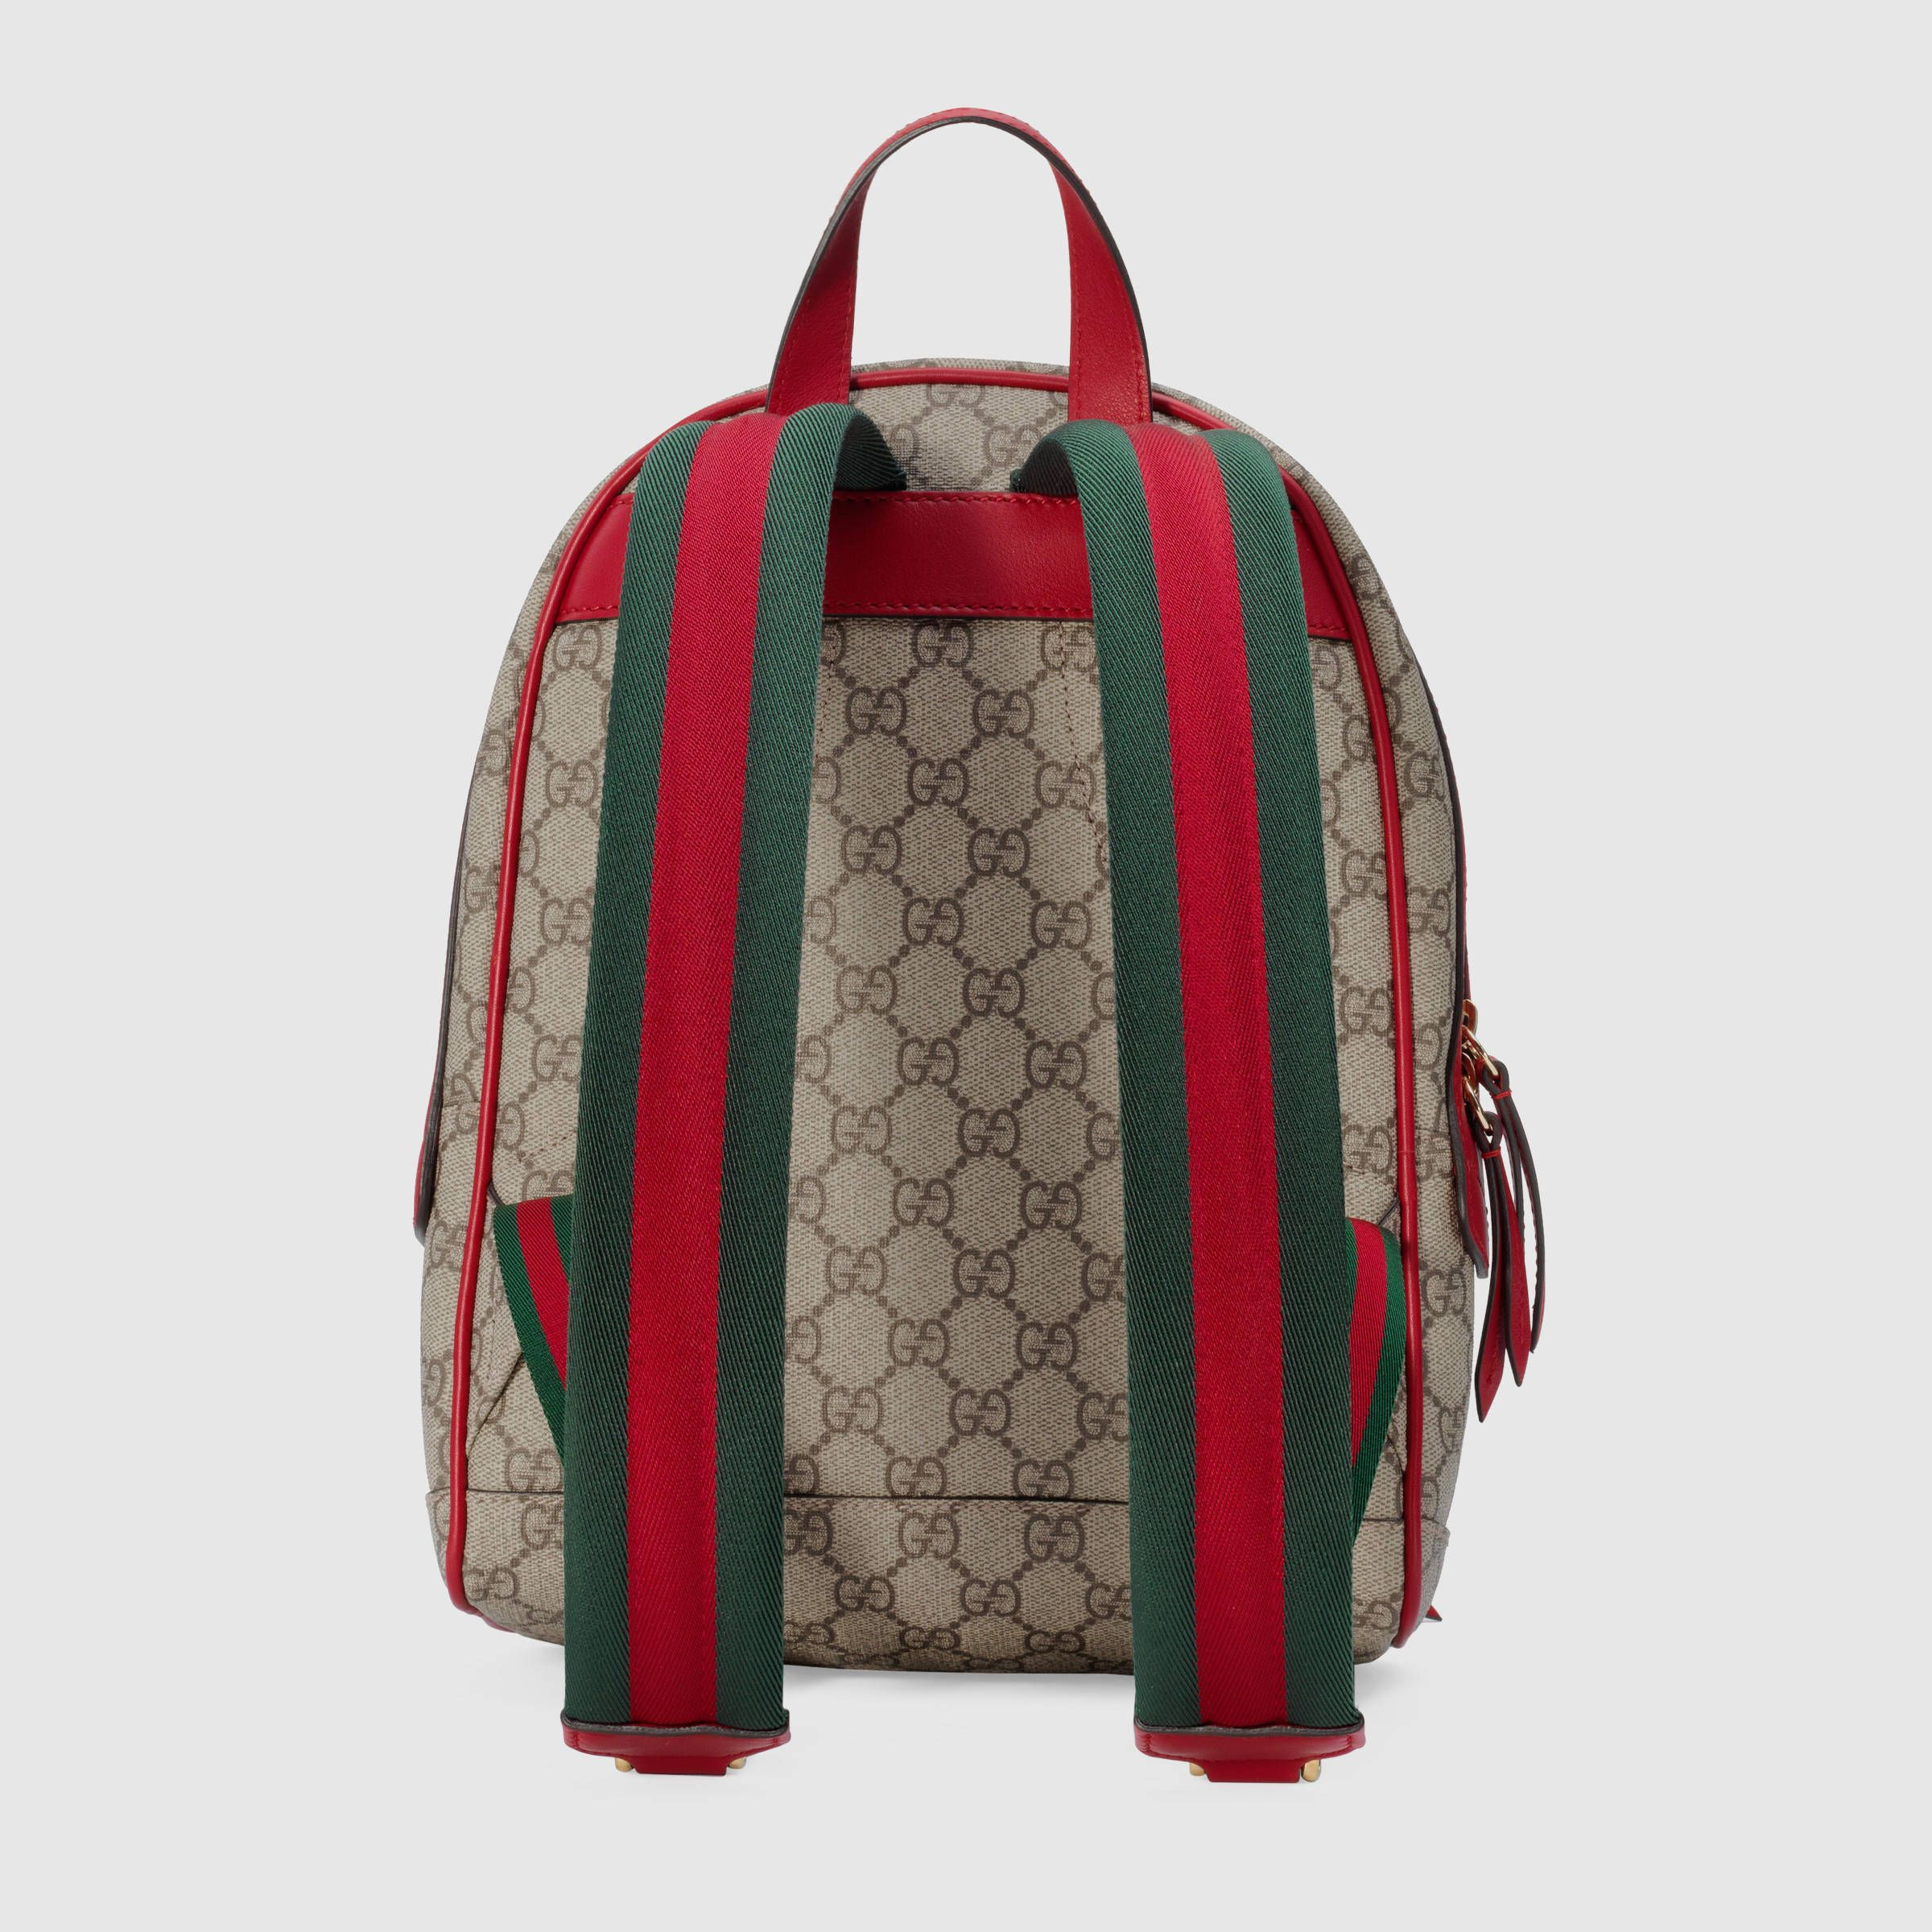 gucci bags backpack. bag gucci bags backpack t